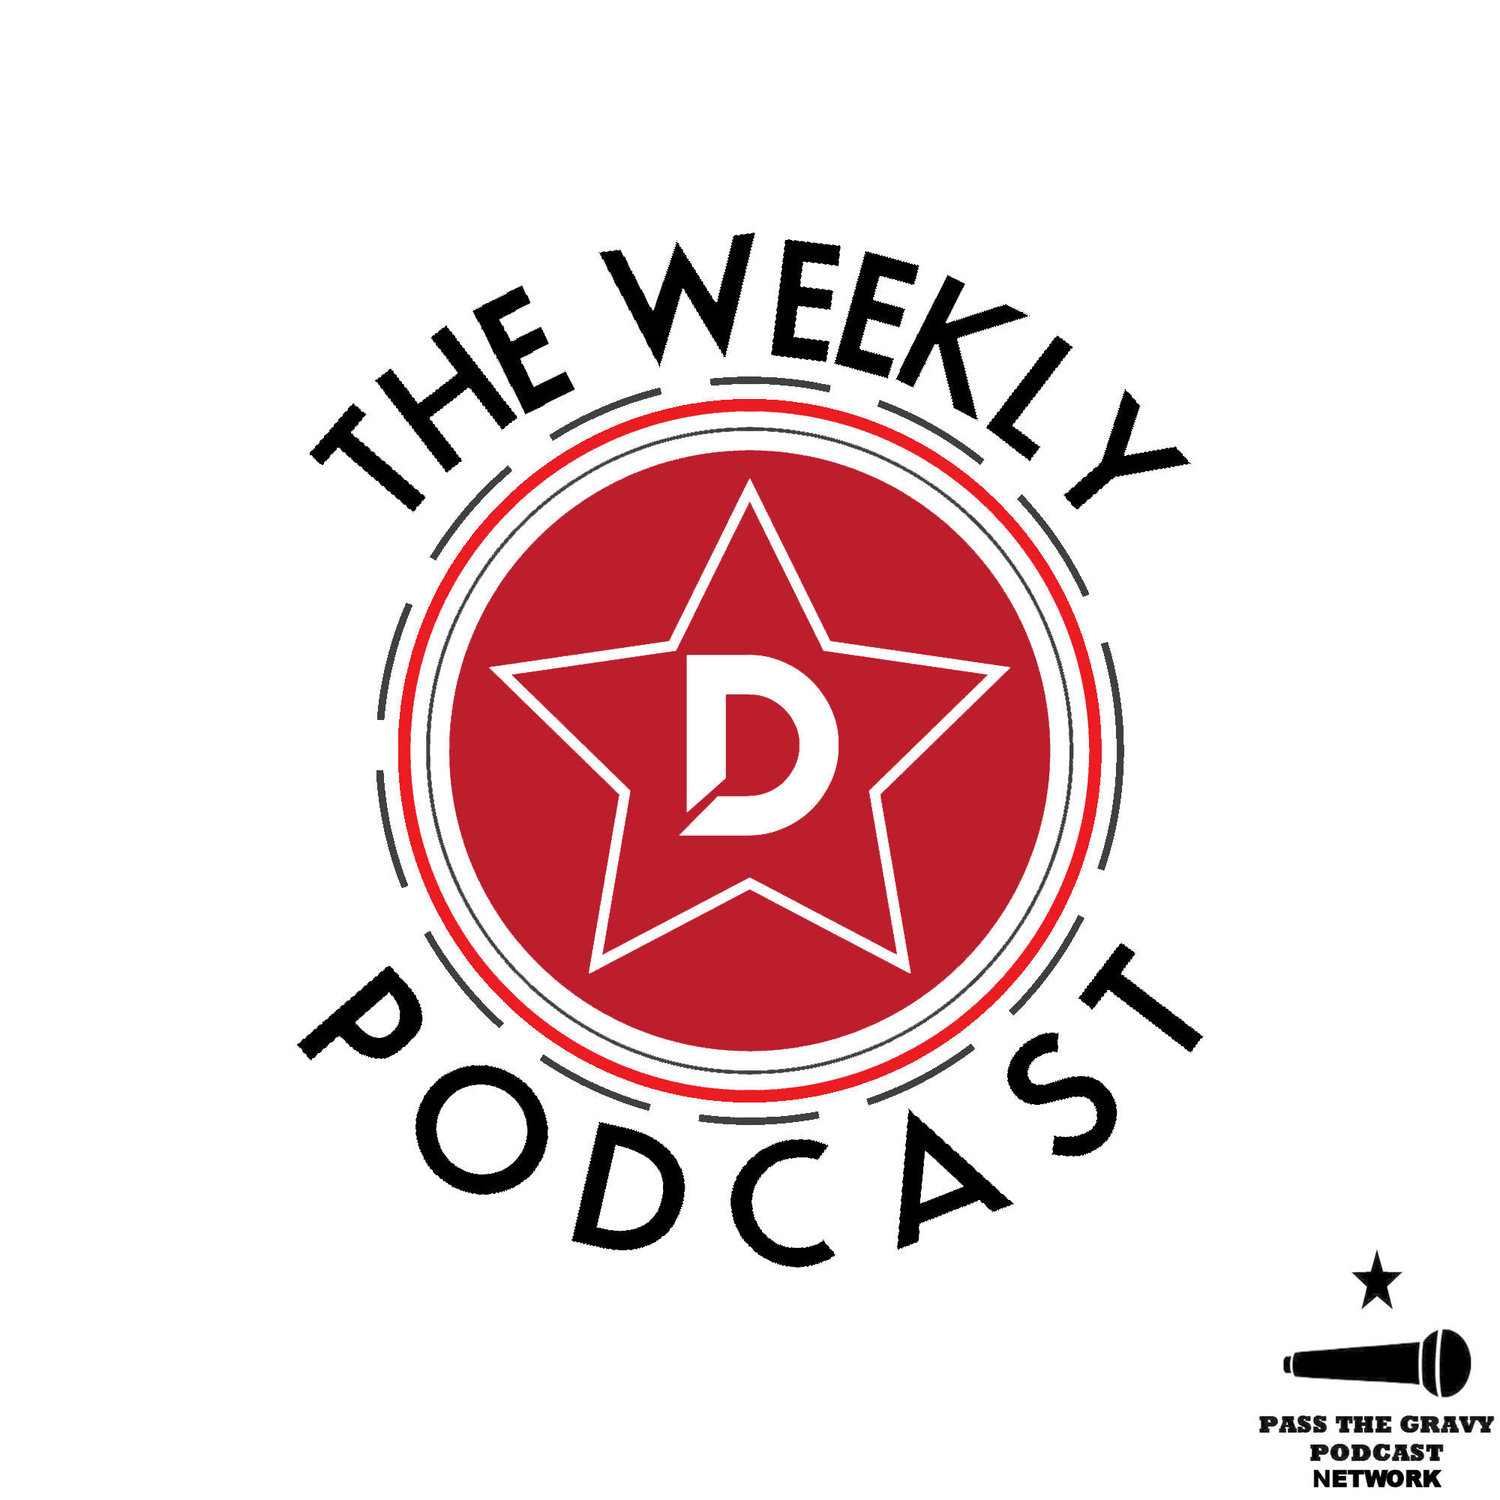 Weekly D Podcast